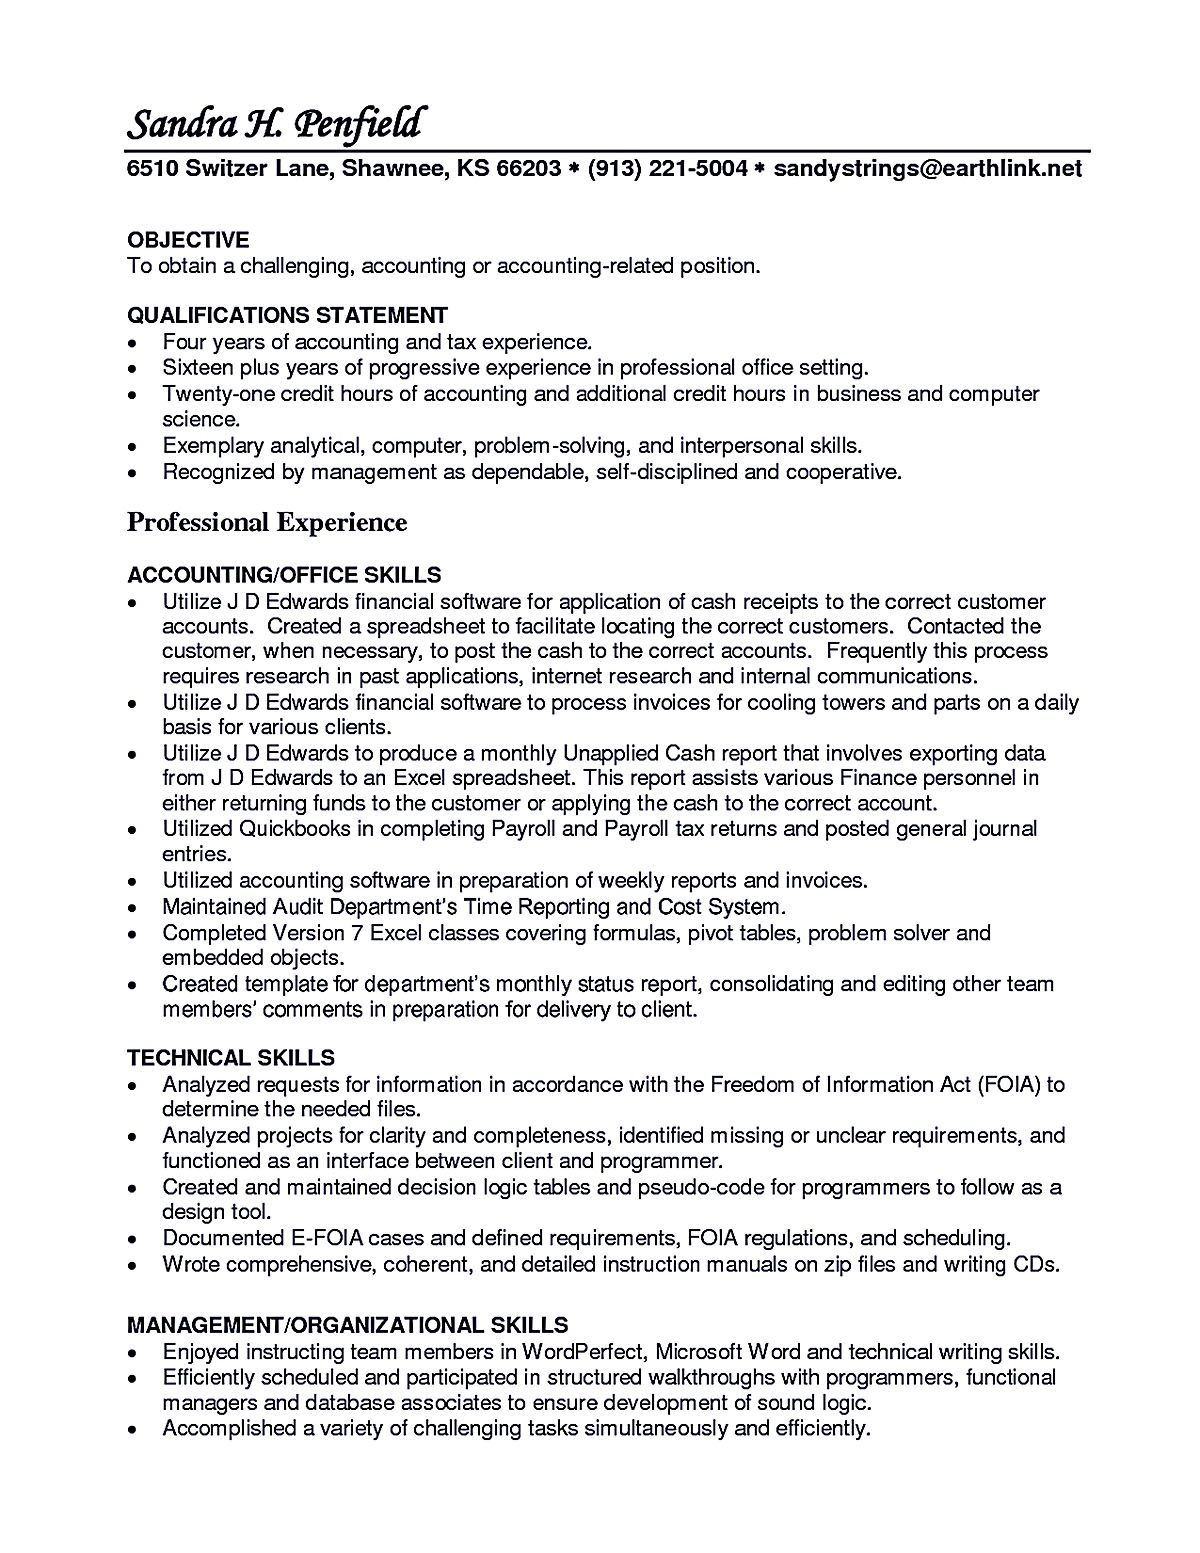 Account Receivable Resume Shows Both Technical And